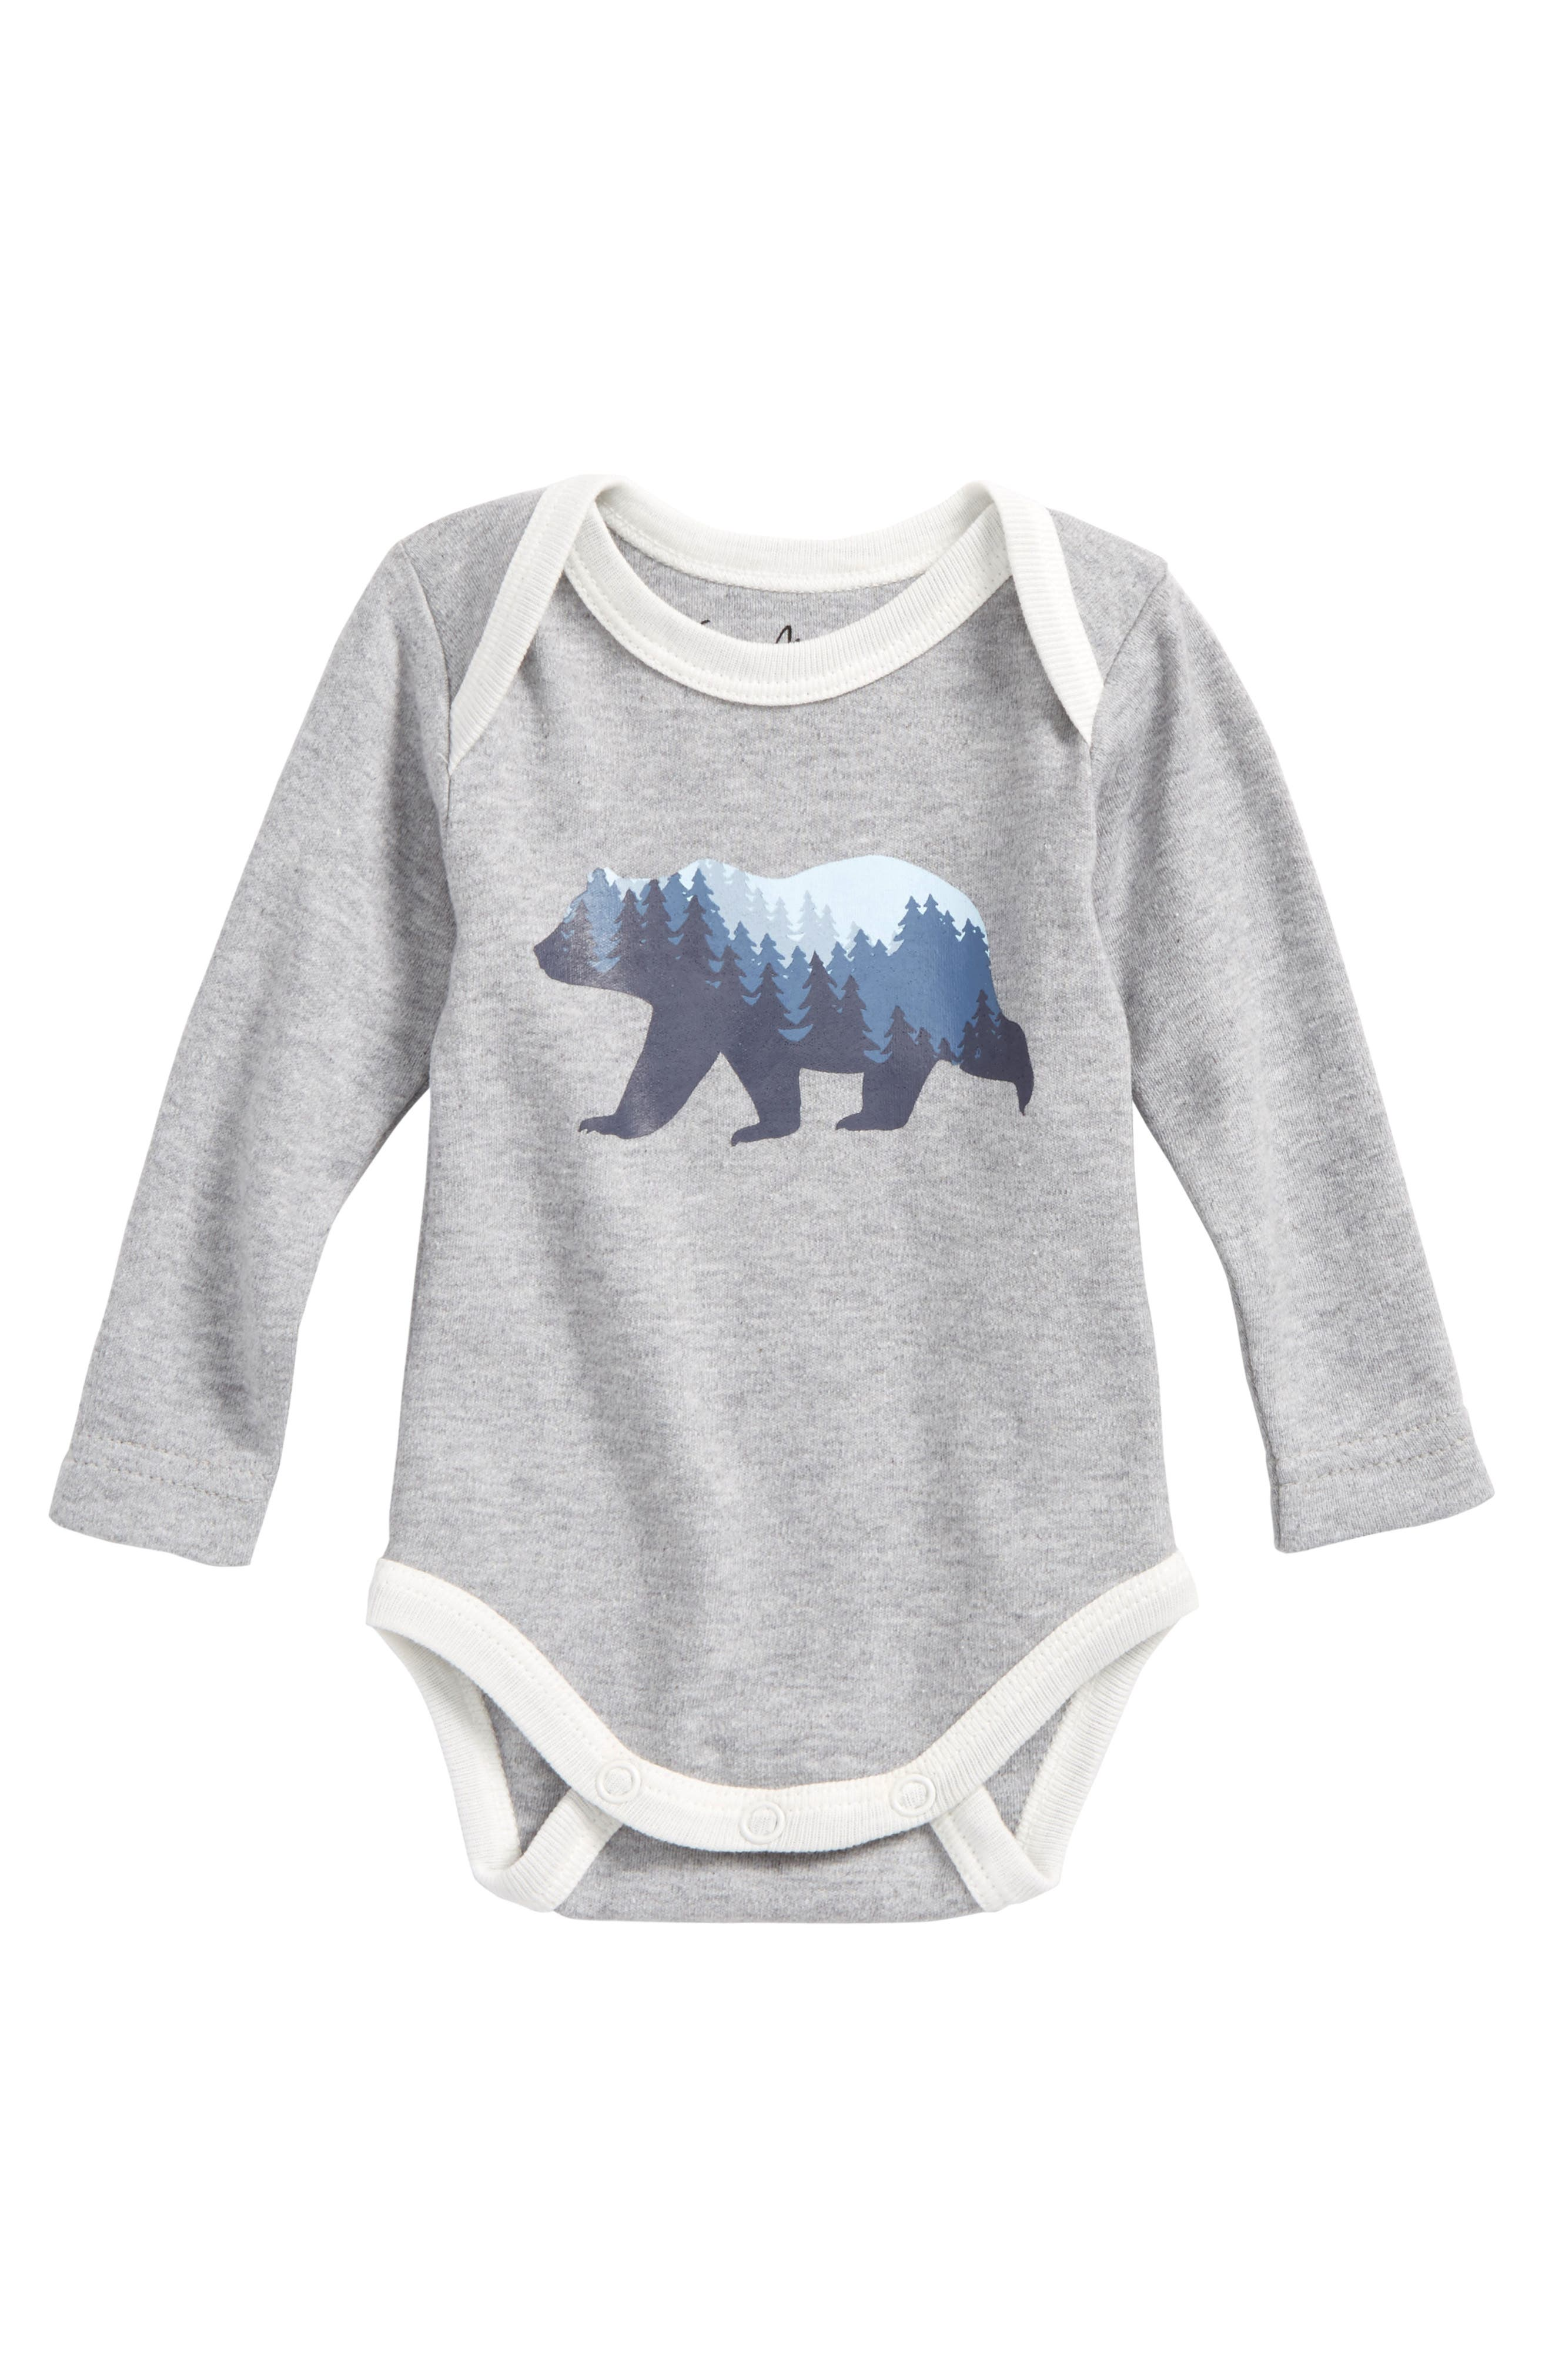 Bear Graphic Organic Cotton Bodysuit,                         Main,                         color, Heather Grey